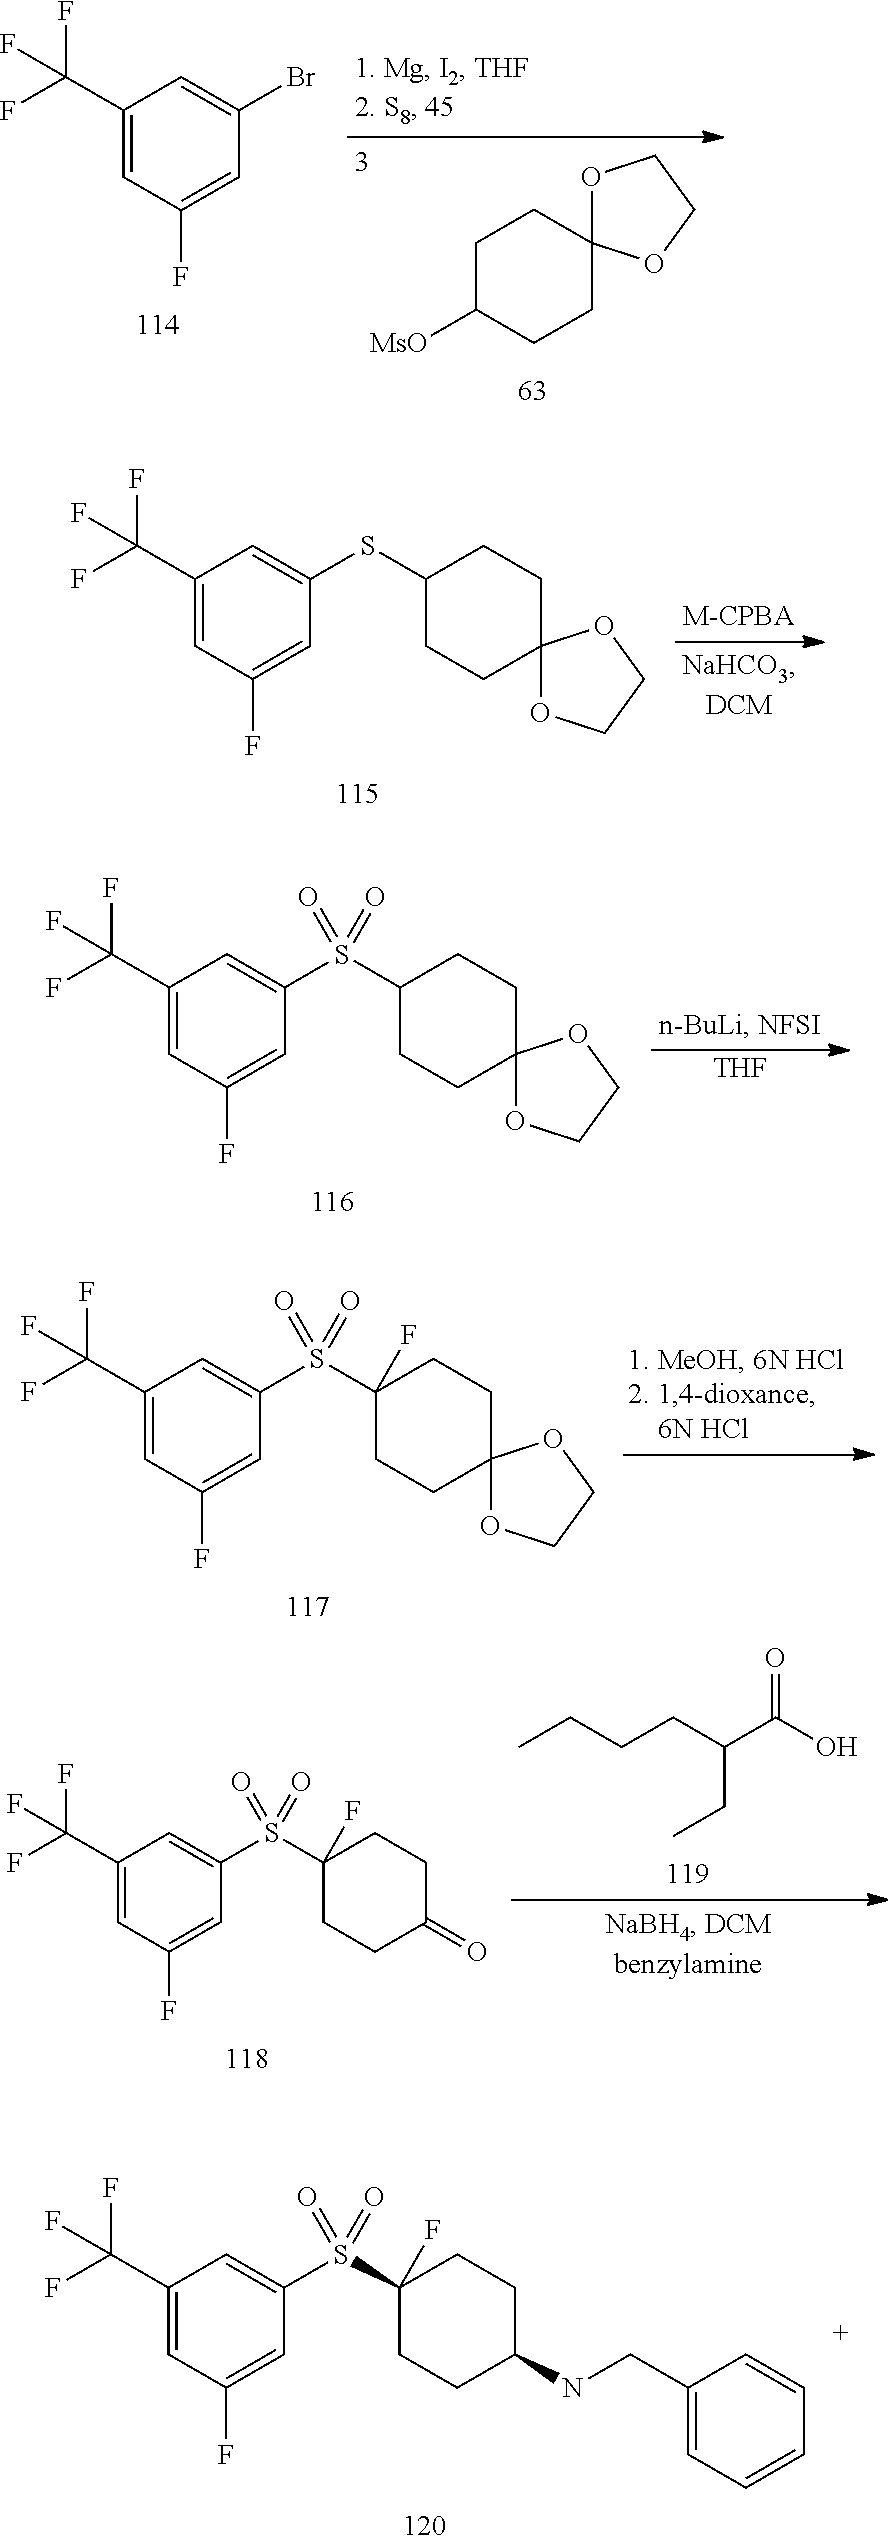 Us20120245137a1 Aryl Sulphone Derivatives As Calcium Channel Seal Skeleton Labeled See Diagram 9230 Figure 20120927 C00056